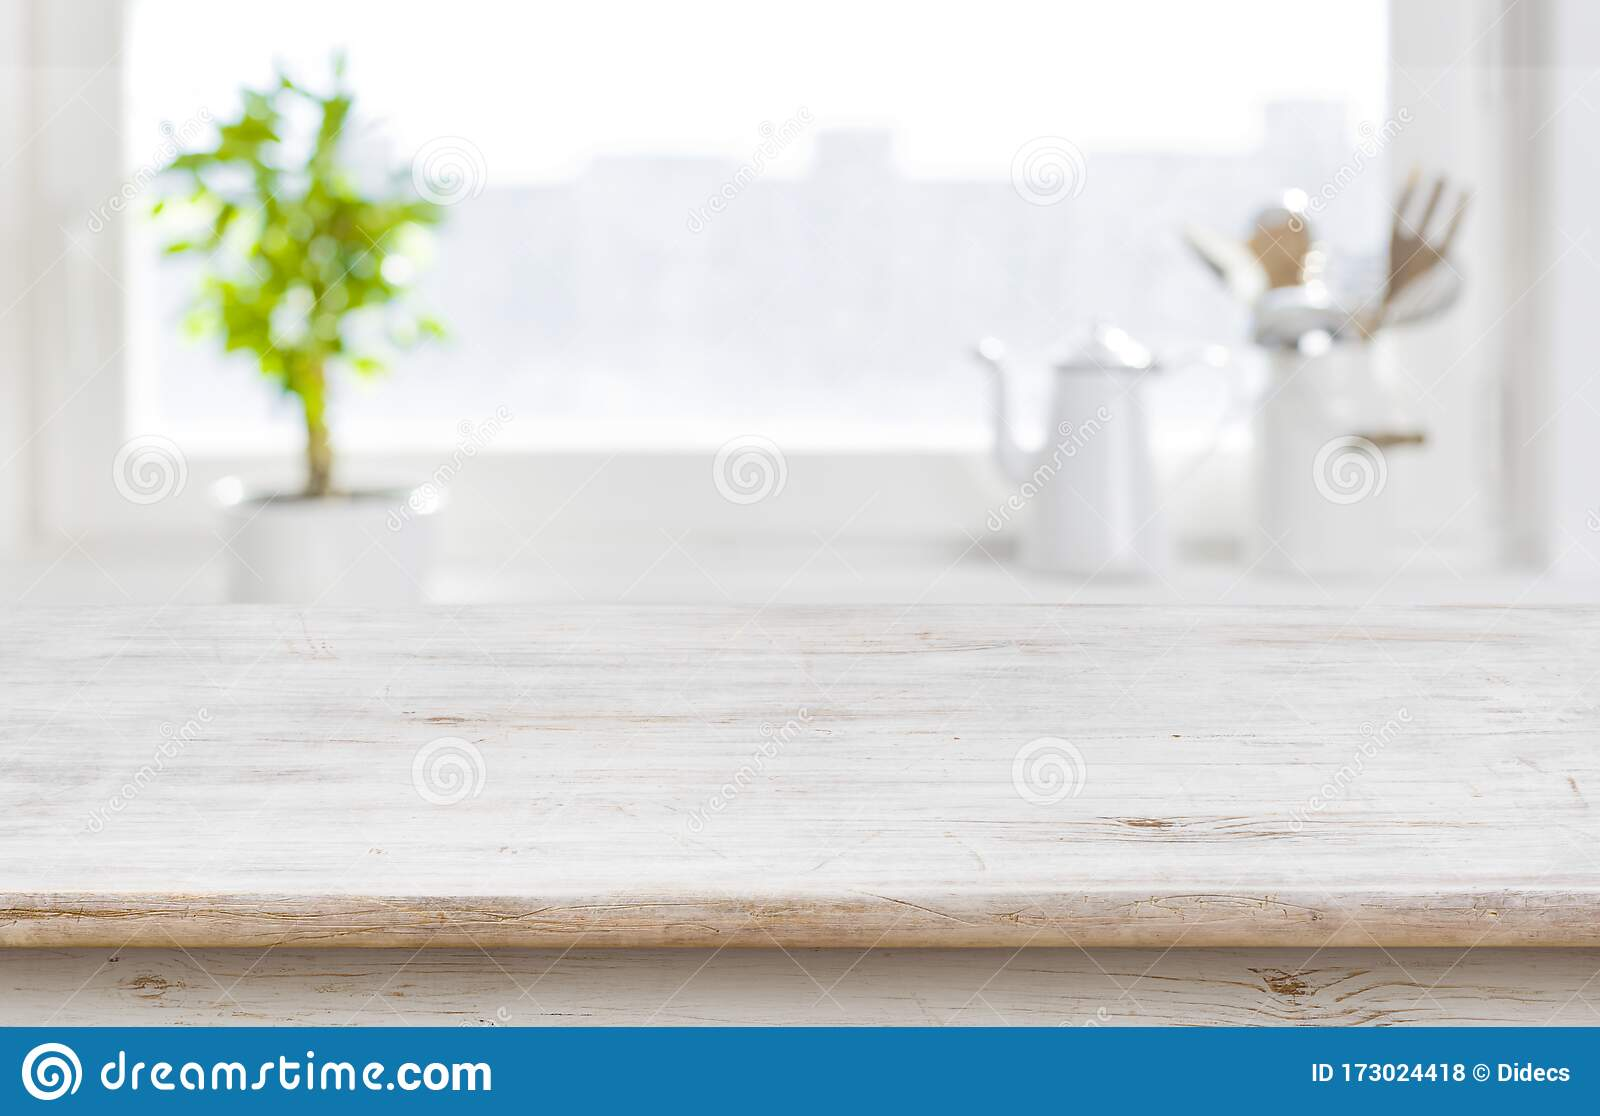 aged kitchen table top over window background with copy